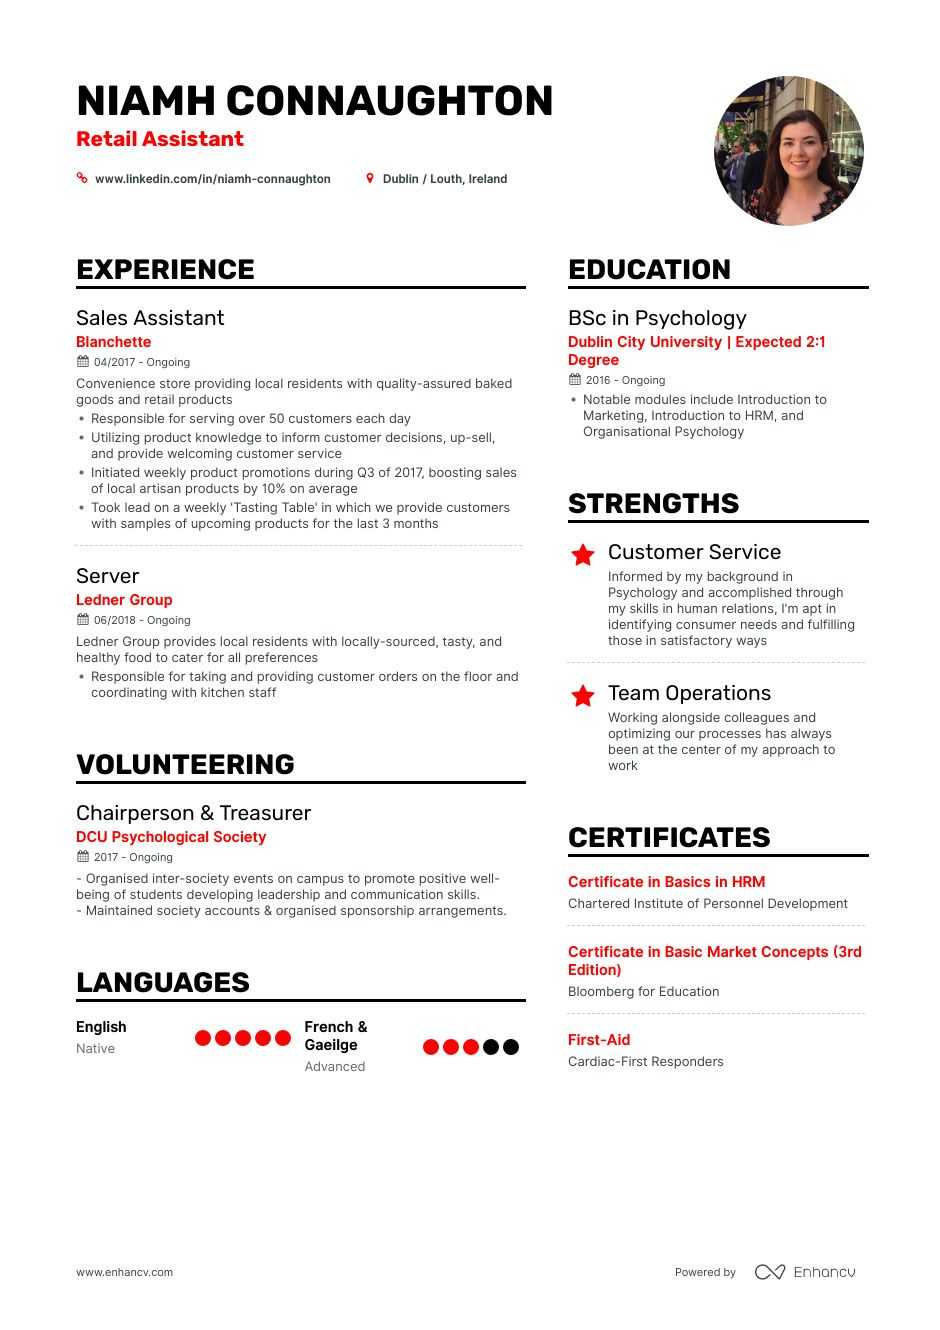 retail resume examples and skills you need to get hired suggestions ivory paper pictorial Resume Resume Suggestions Skills